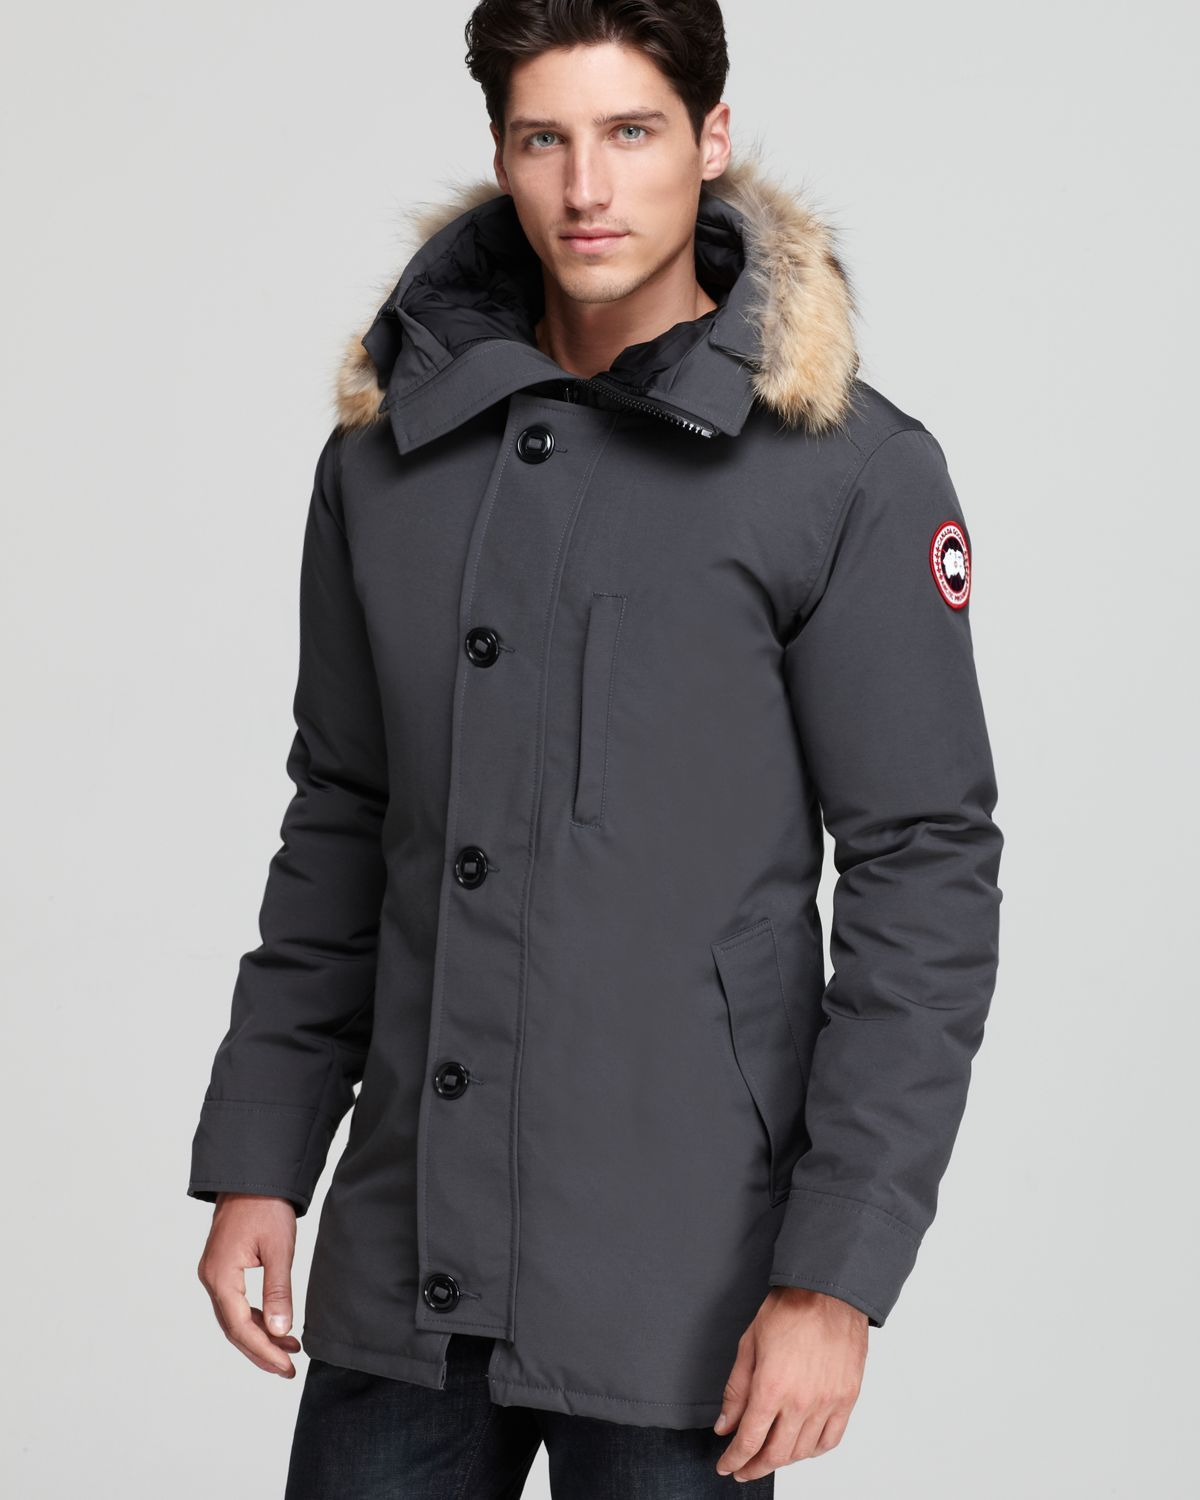 canada goose chateau parka with fur hood in gray for men graphite rh pinterest com